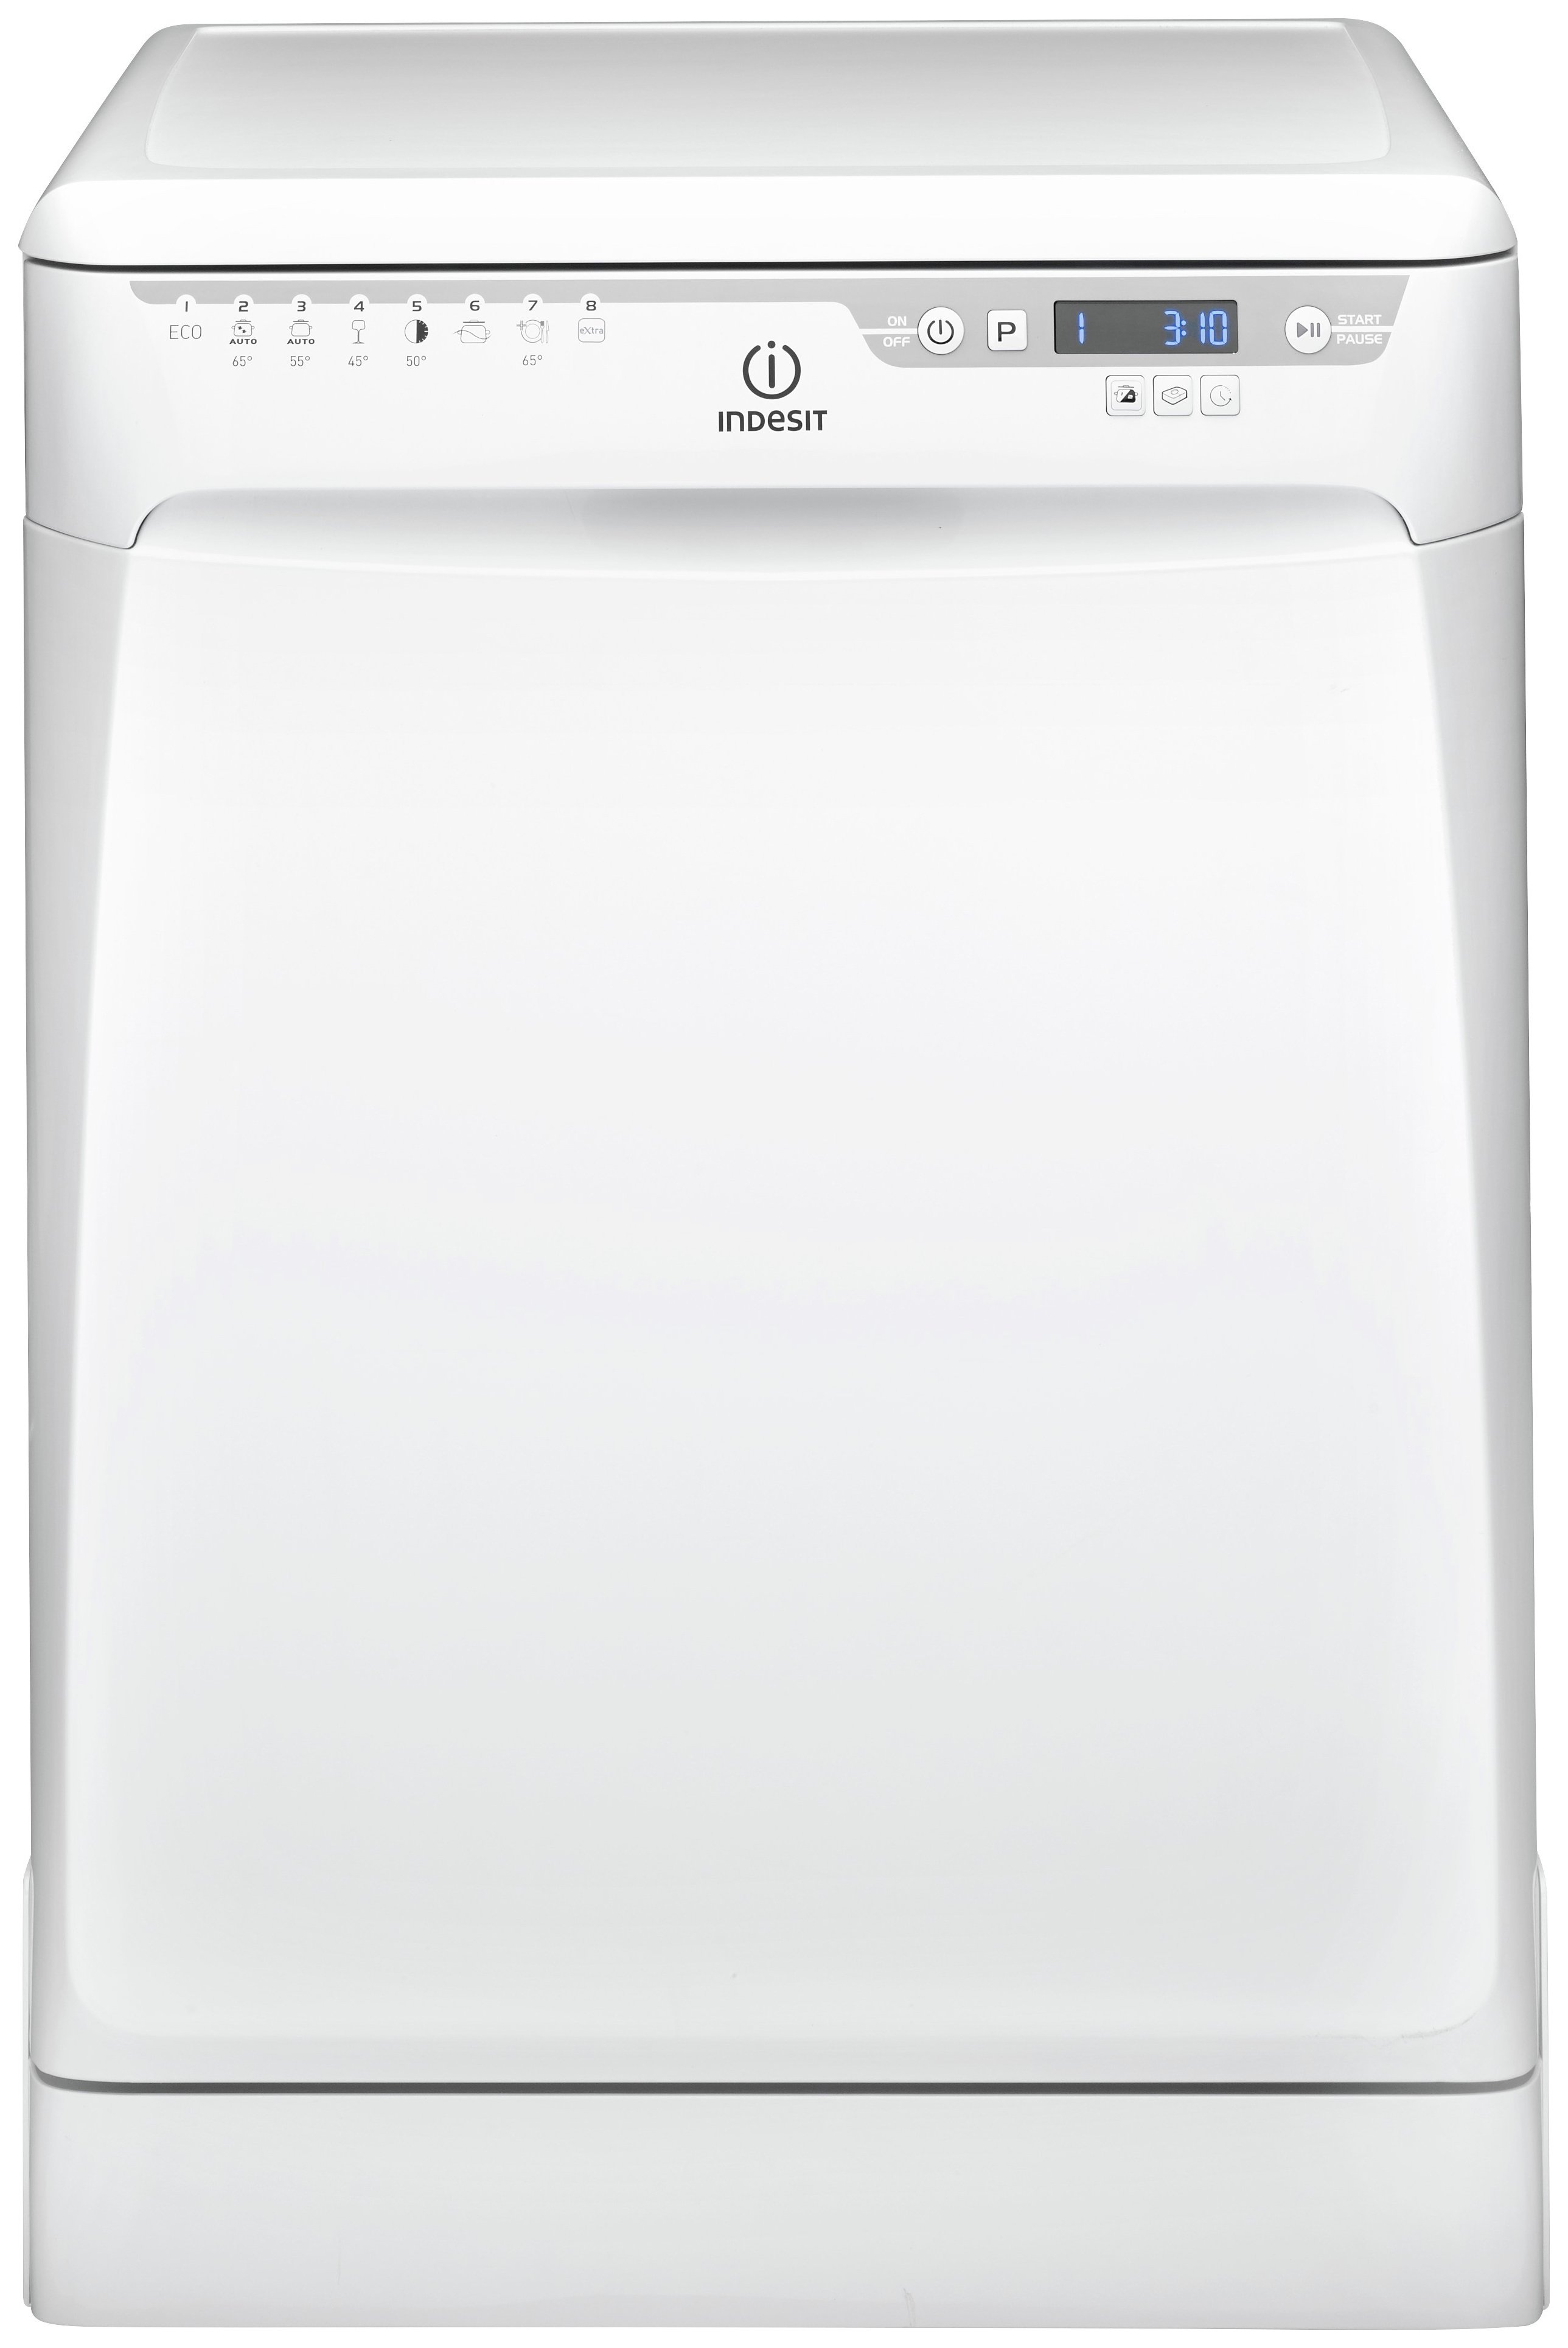 Image of Indesit DFP58T94A Full Size Dishwasher - White.